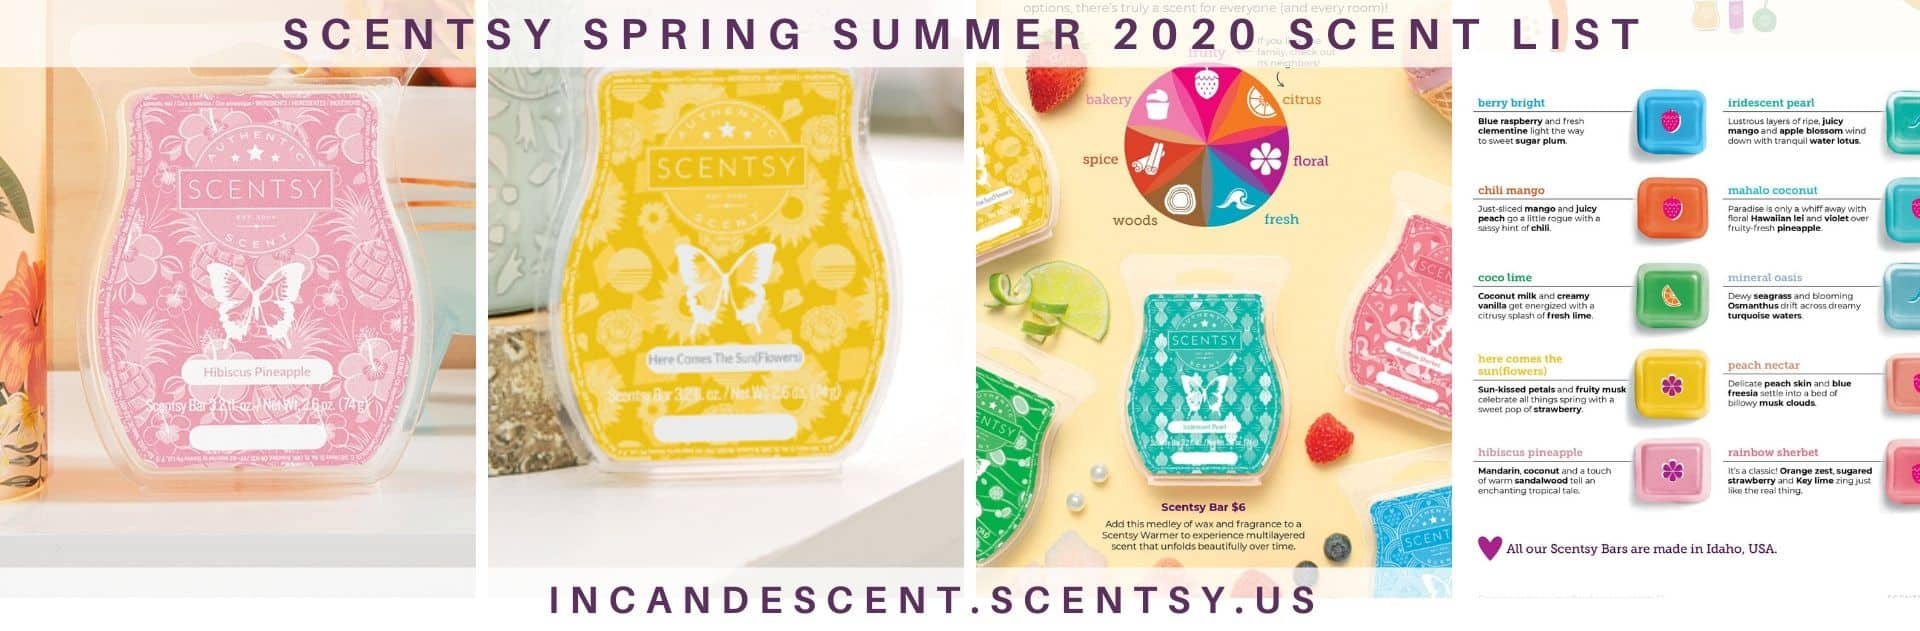 SCENTSY SPRING SUMMER 2020 CATALOG SCENT LIST